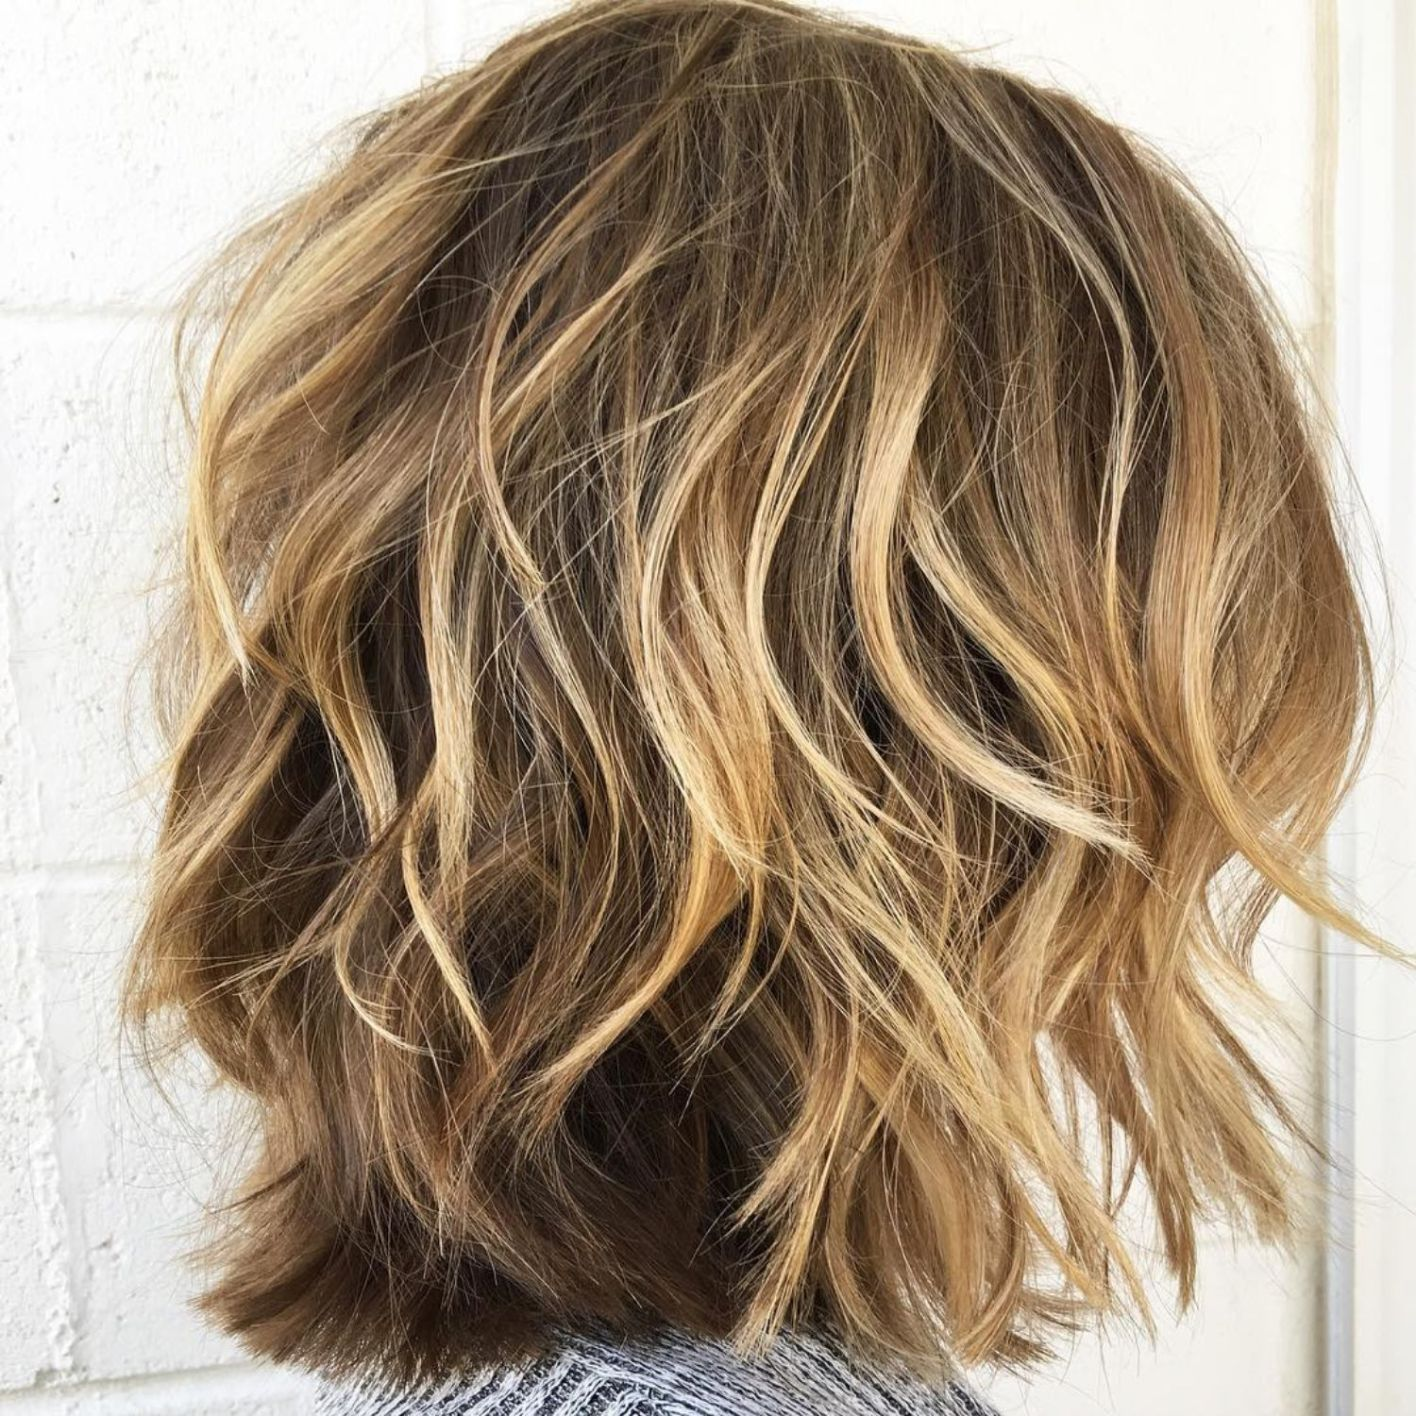 60 Most Magnetizing Hairstyles For Thick Wavy Hair Short Thick Wavy Hair Thick Wavy Hair Bob Hairstyles For Thick